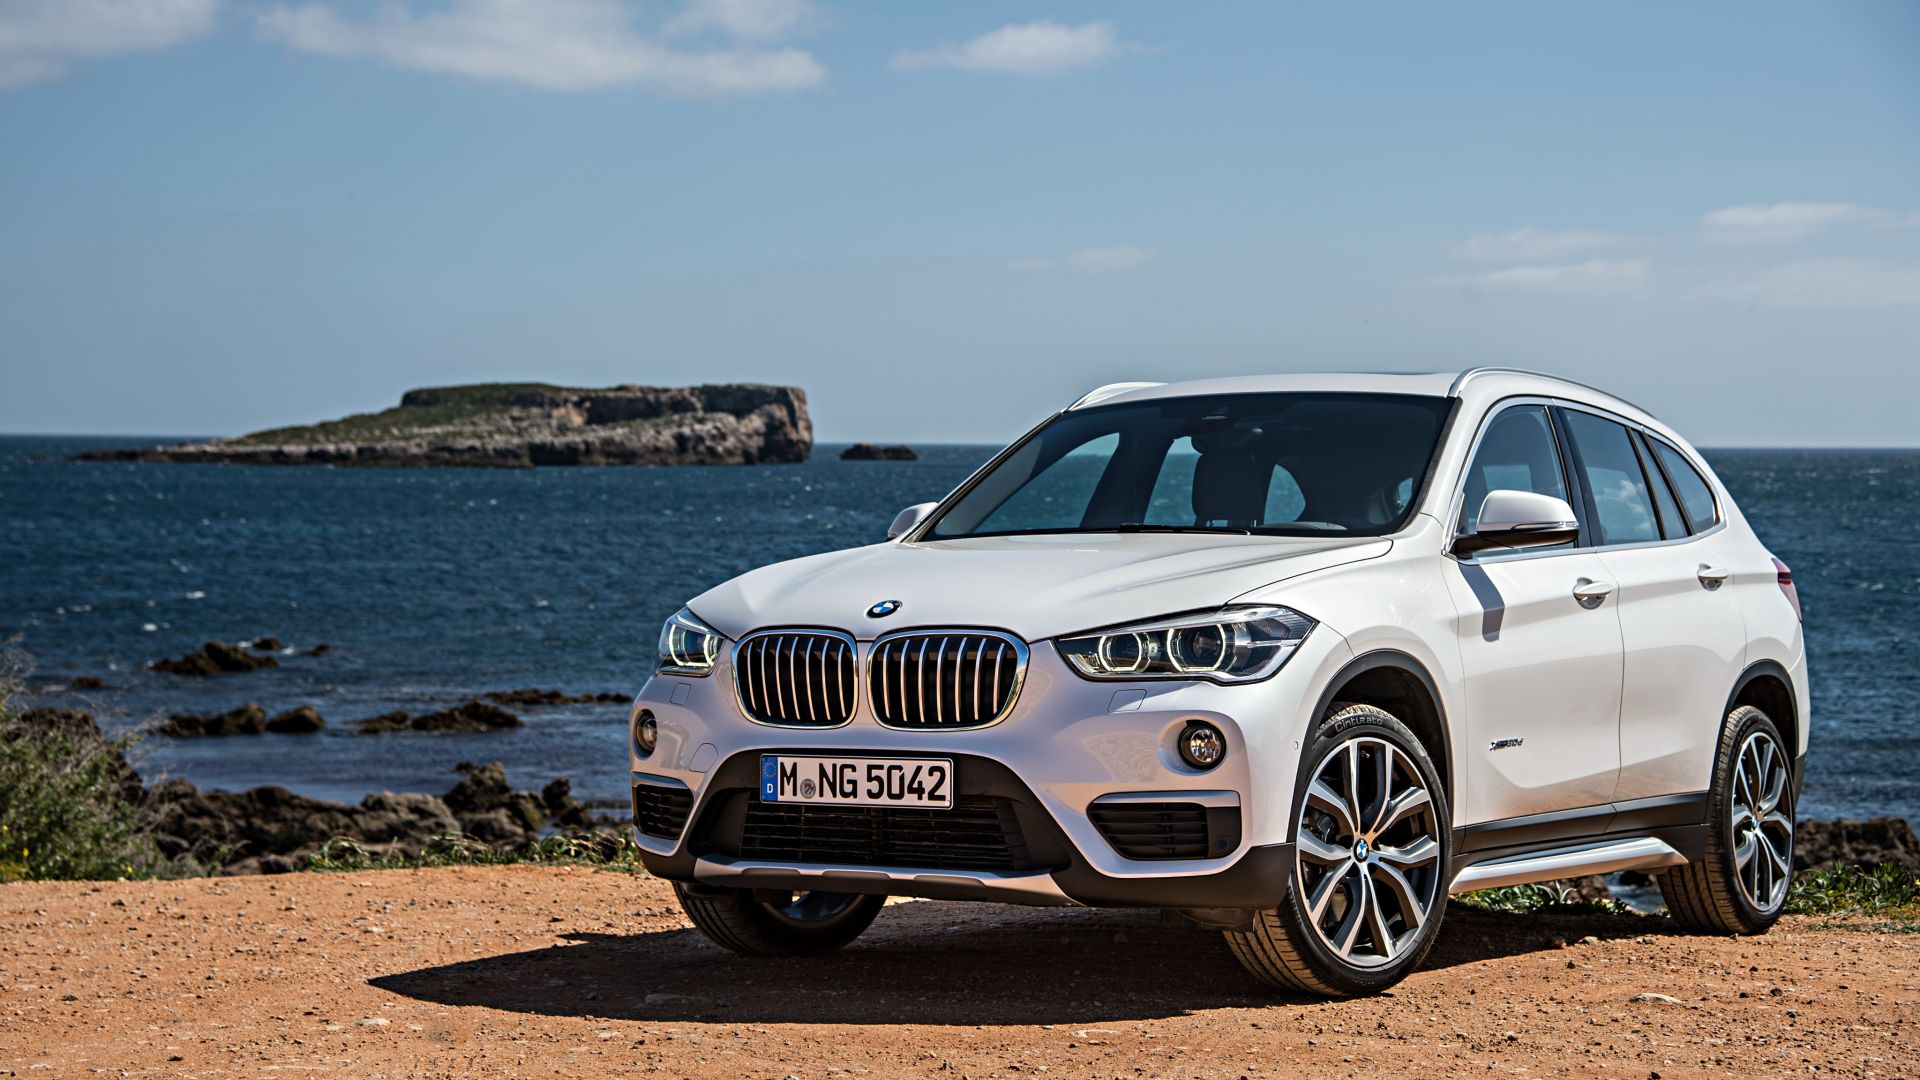 wallpaper bmw x1 crossover luxury cars white suv. Black Bedroom Furniture Sets. Home Design Ideas